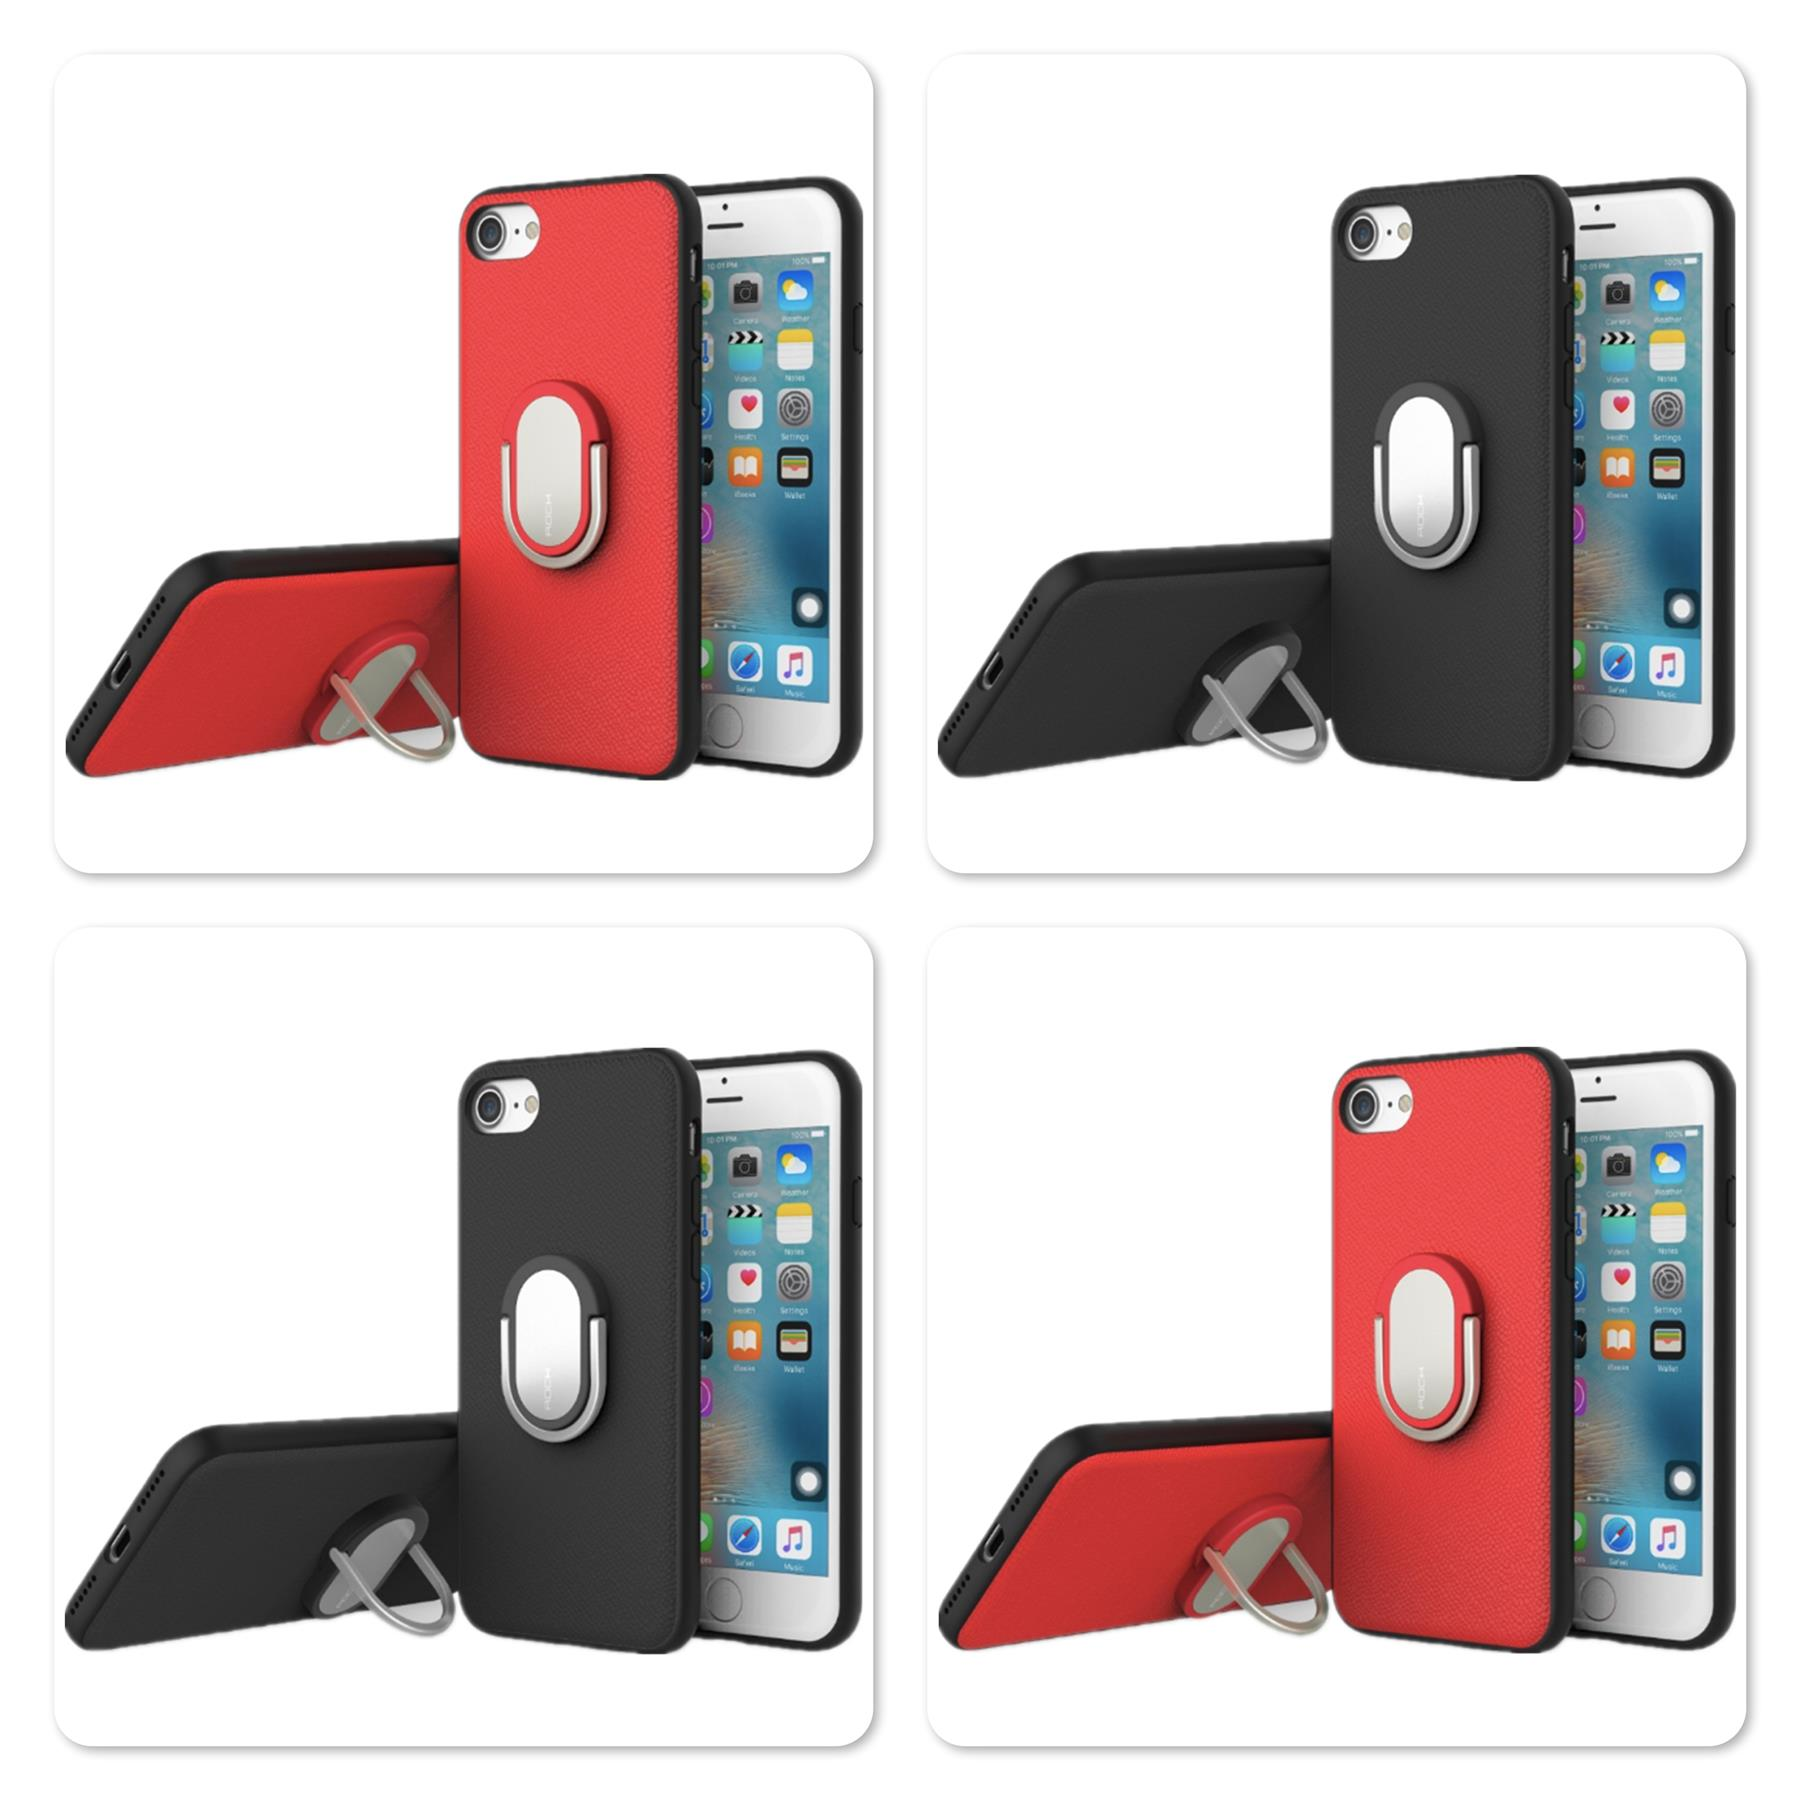 Apple iPhone 7 4.7' Rock M1 series Ring Holder Case with Kickstand